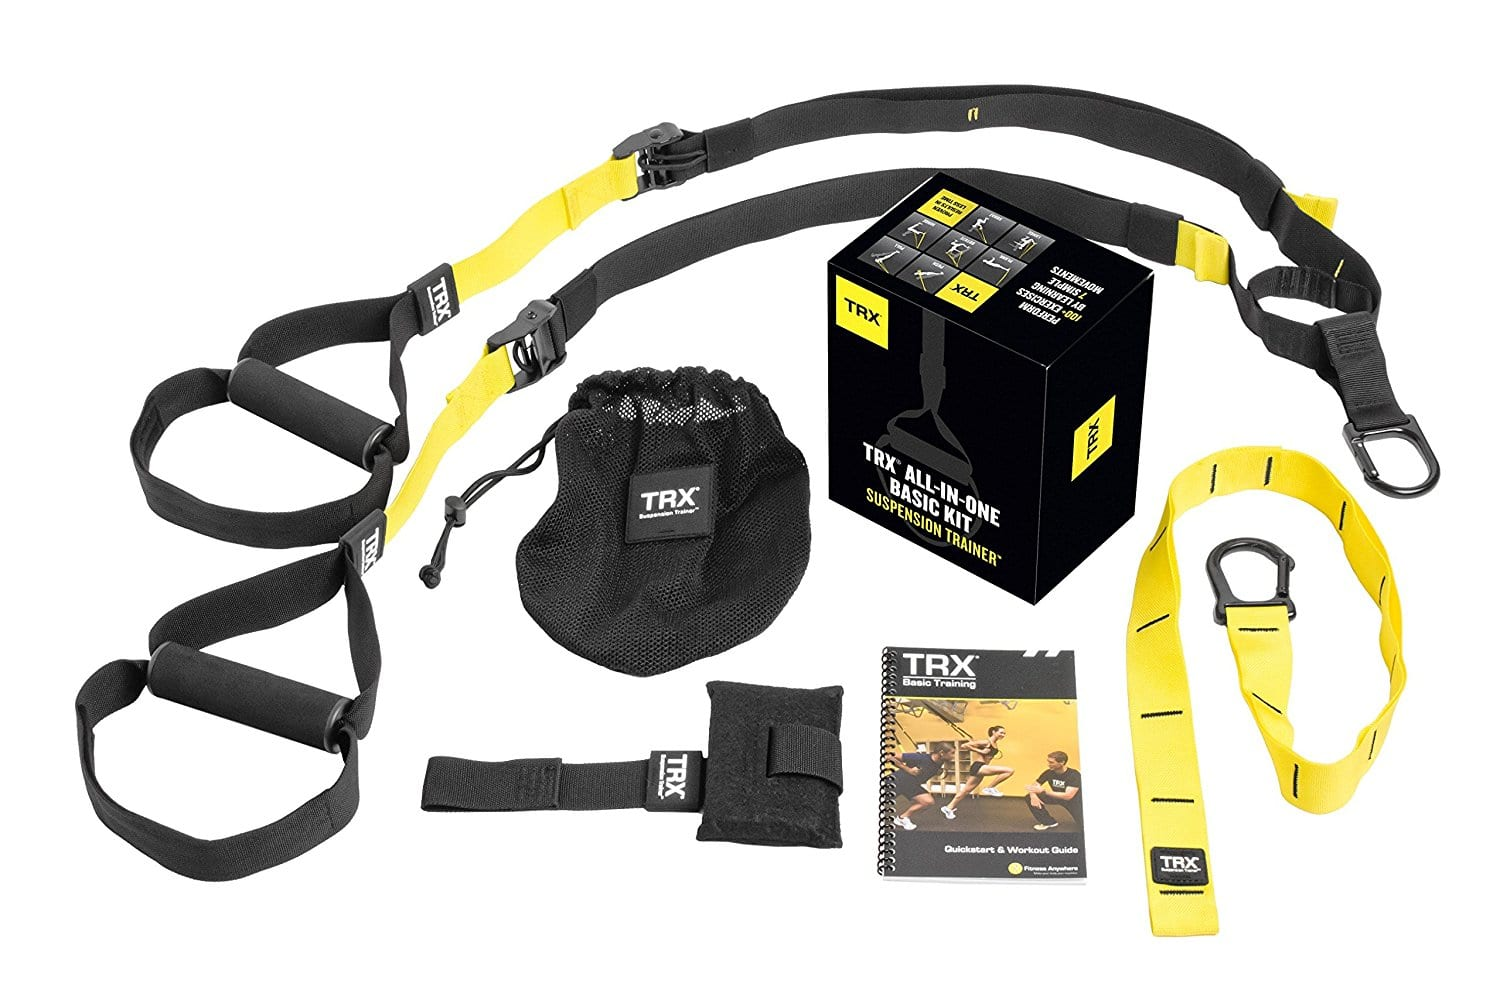 TRX Training kit $100 - best price of the year